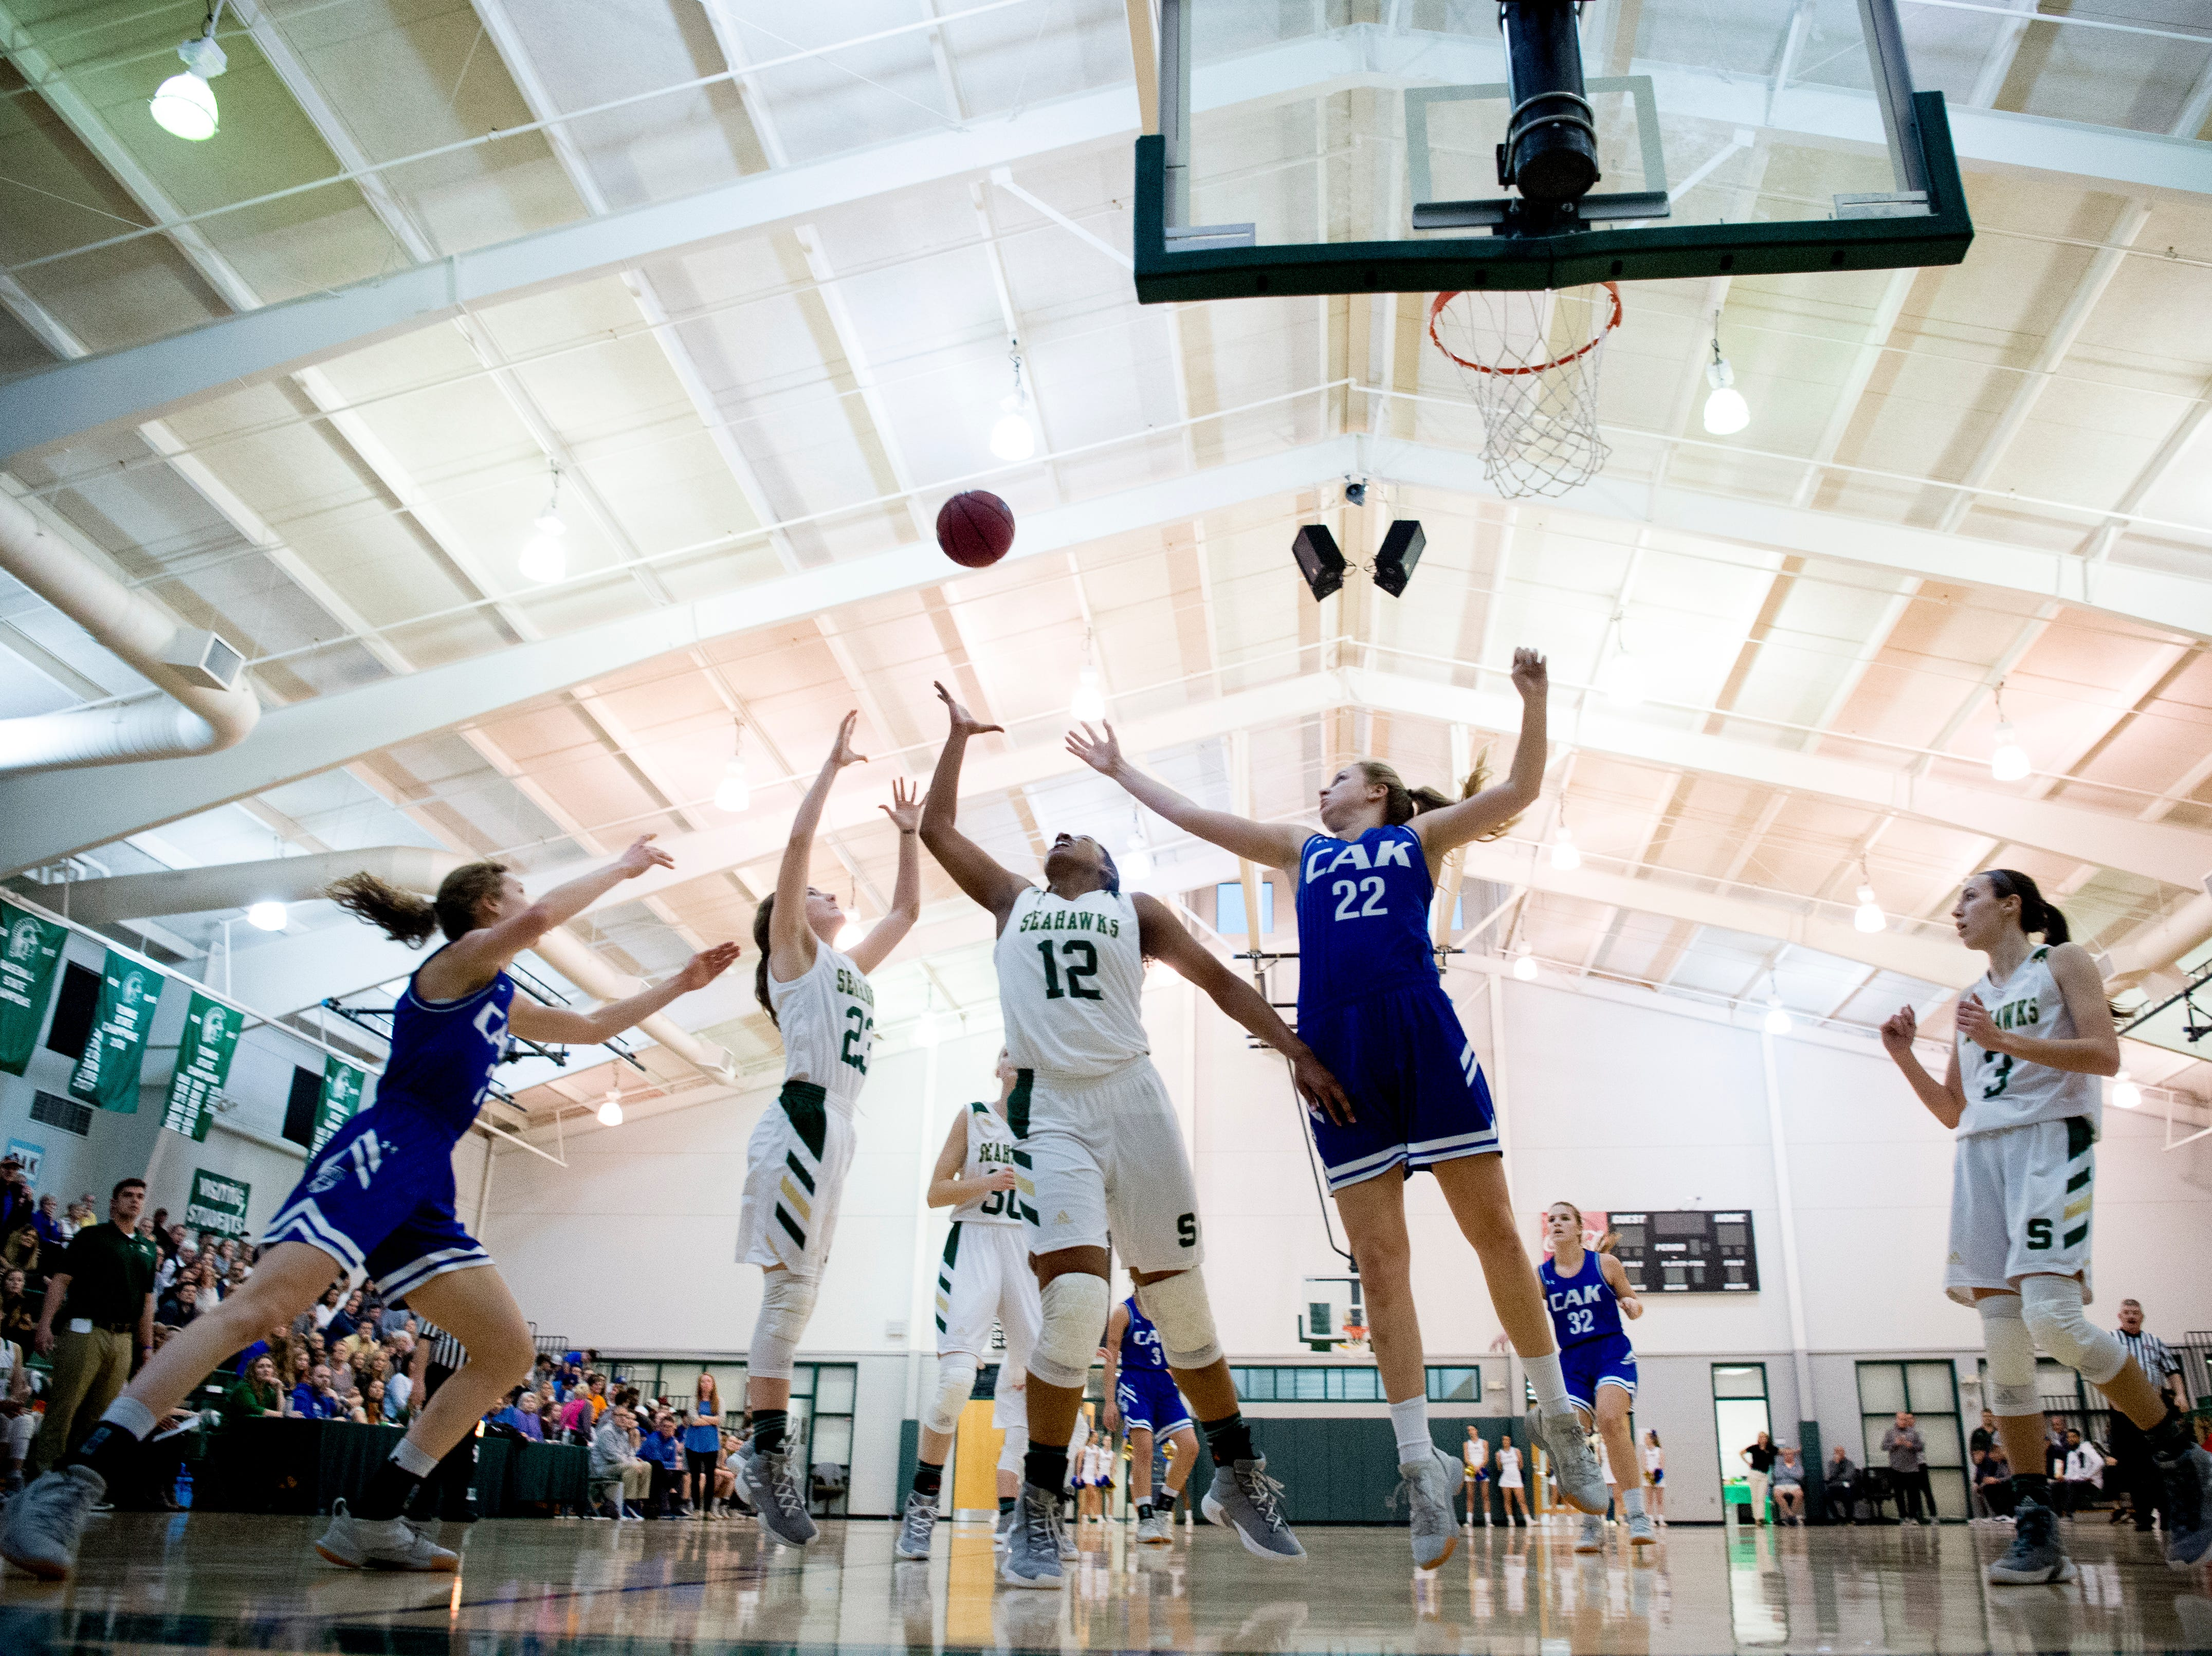 CAK's Caroline Meyers (22) and Silverdale's Laney Bone (12) reach for the ball during a semifinal game between CAK and Silverdale at Webb School of Knoxville in Knoxville, Tennessee on Friday, February 15, 2019.